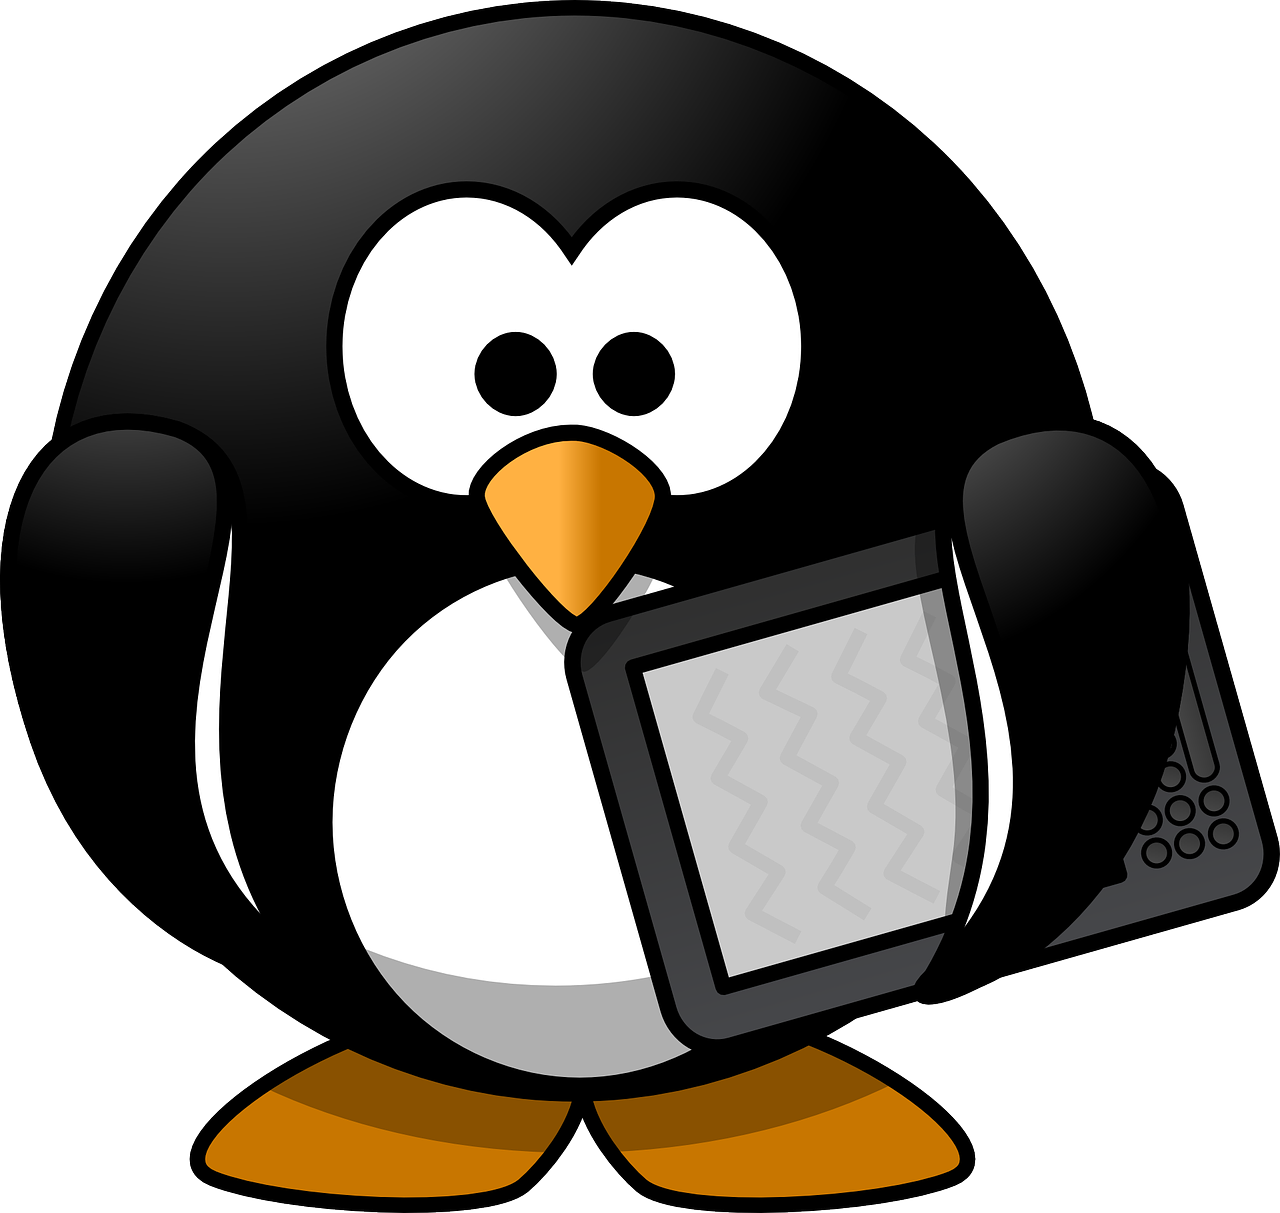 roly-poly little penguin with an ereader/tablet tucked under one wing.